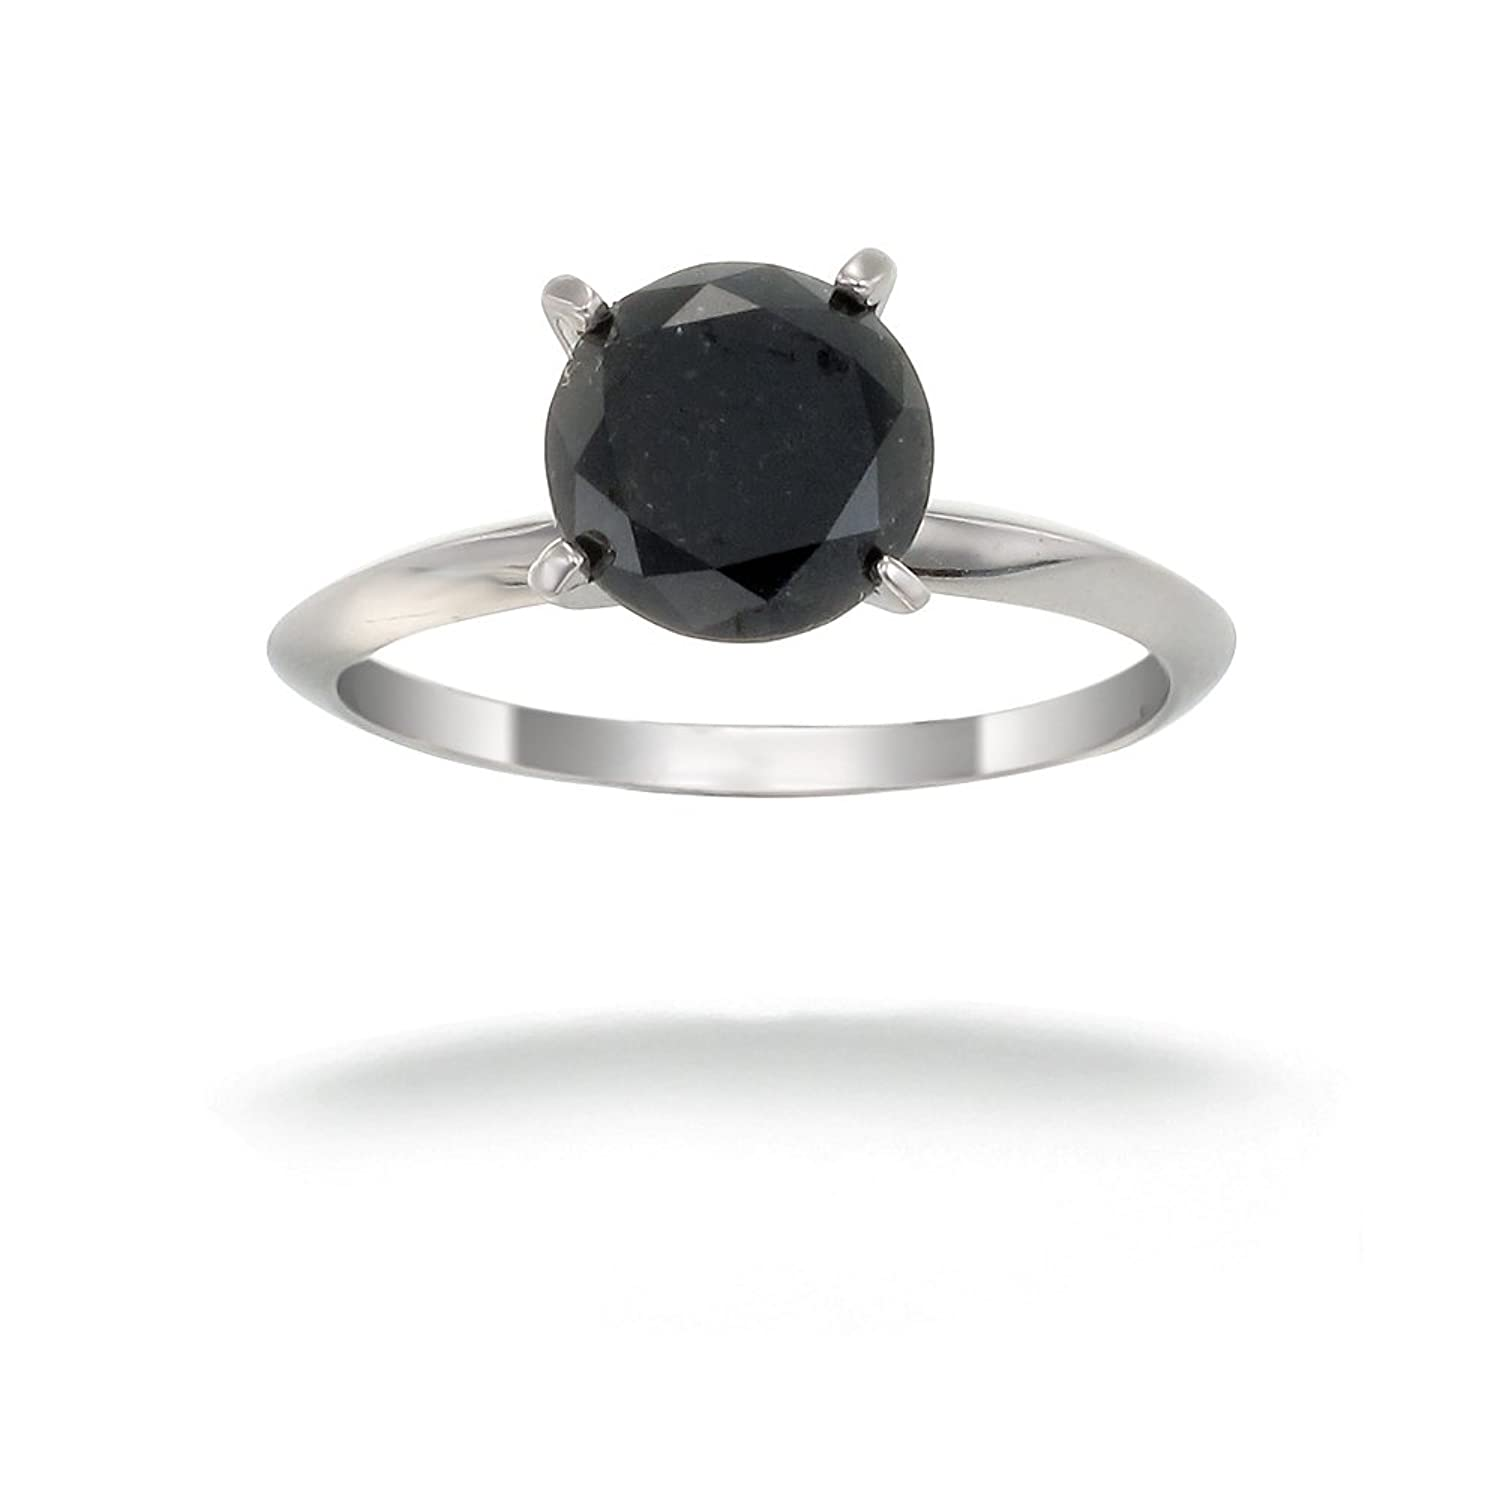 14K White Gold Black Diamond Solitaire Ring 2 CT